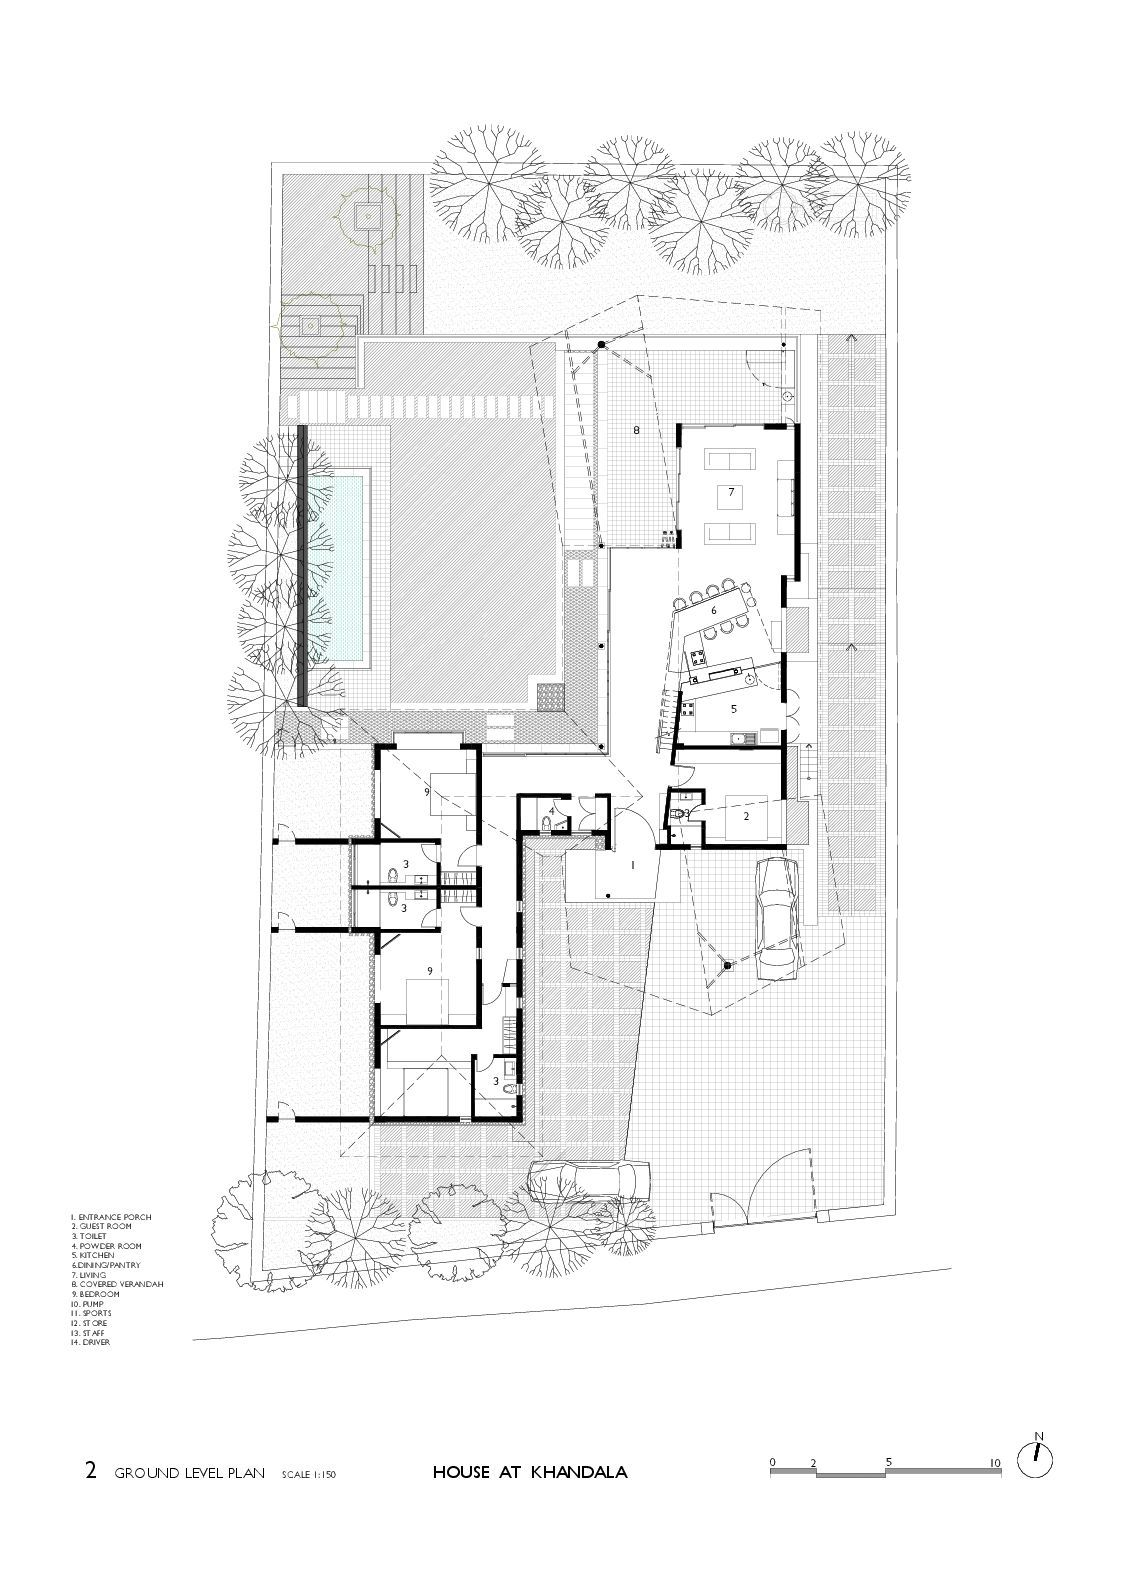 Gallery of House in Khandala / Opolis architects - 15 on christmas story house floor plan, gatsby house floor plan, barbie house floor plan, incredibles house floor plan, frodo baggins house floor plan,